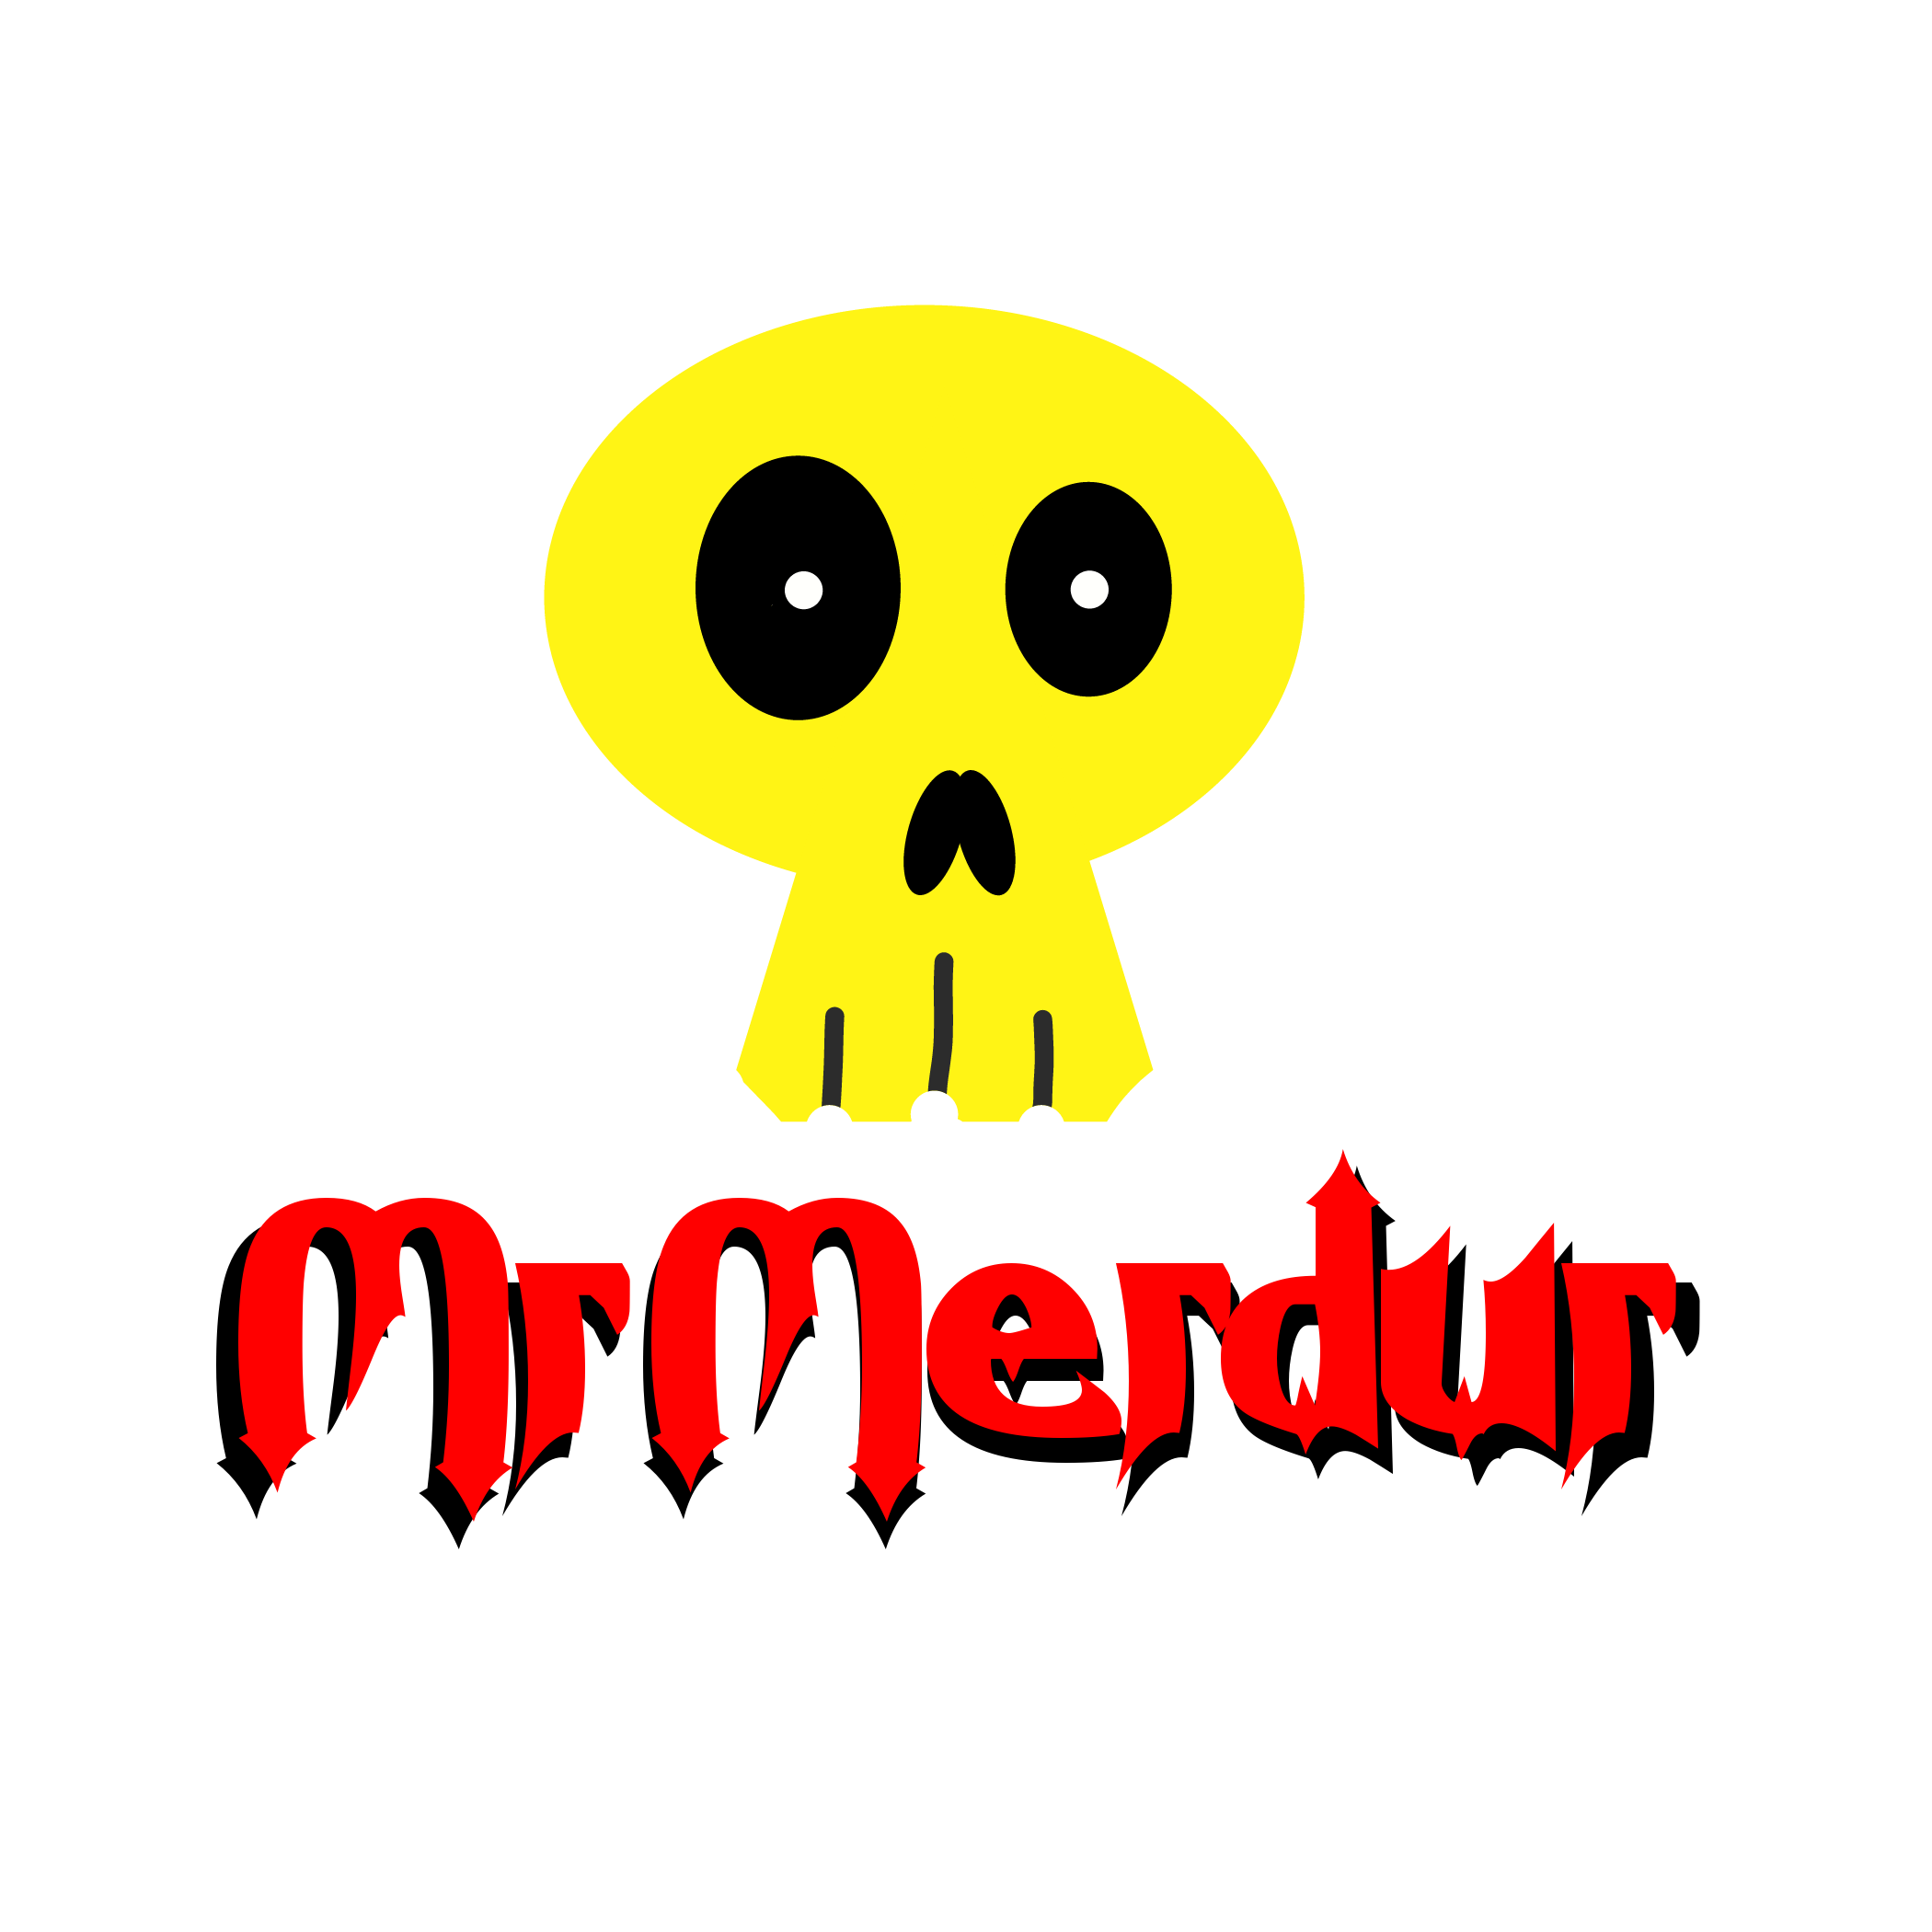 Make sure you drop a follow at twitch tv/mrmerdur  Also if